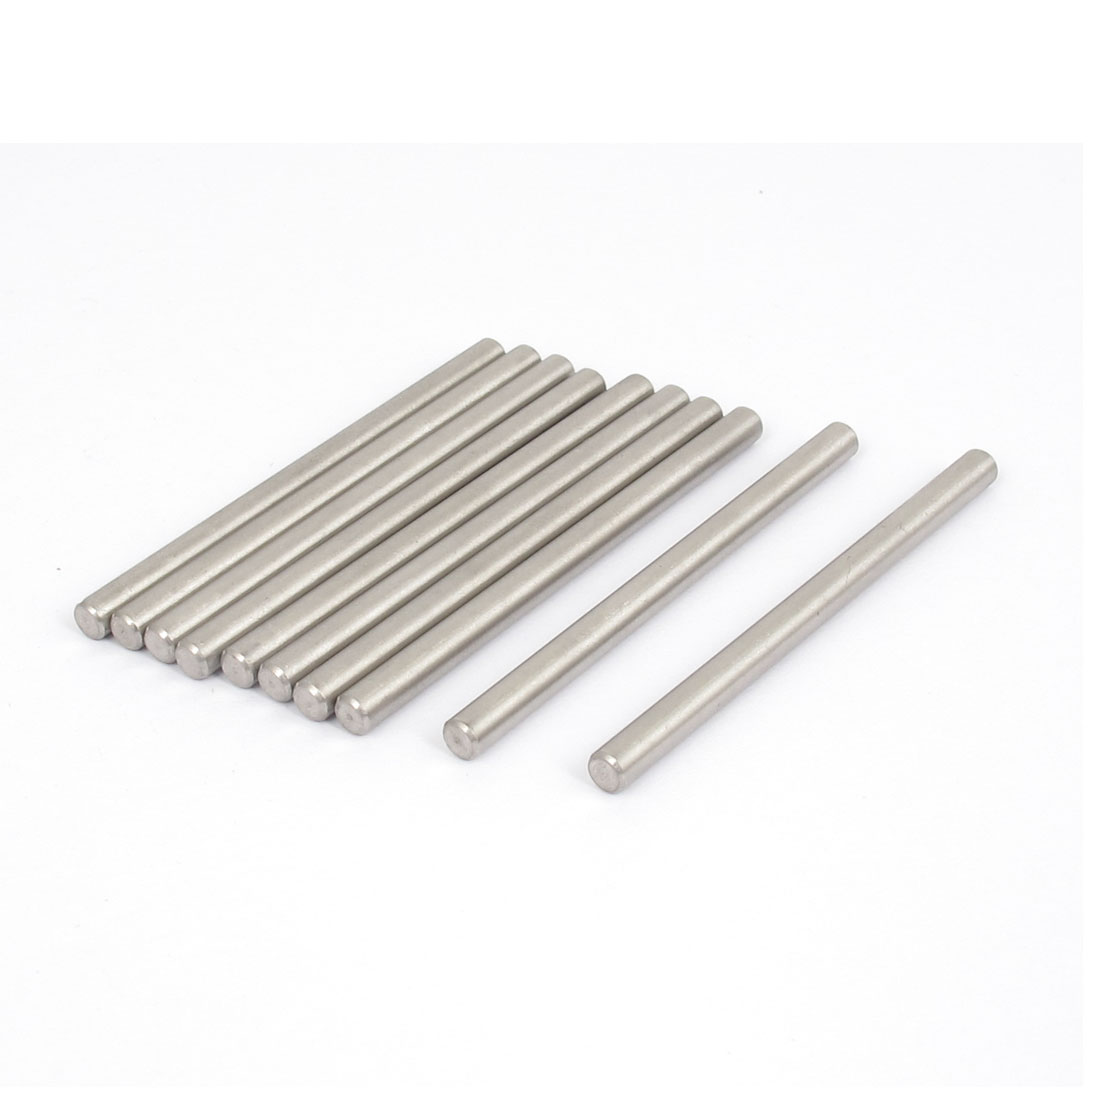 4mmx60mm 304 Stainless Steel Parallel Dowel Pins Fastener Elements 10pcs